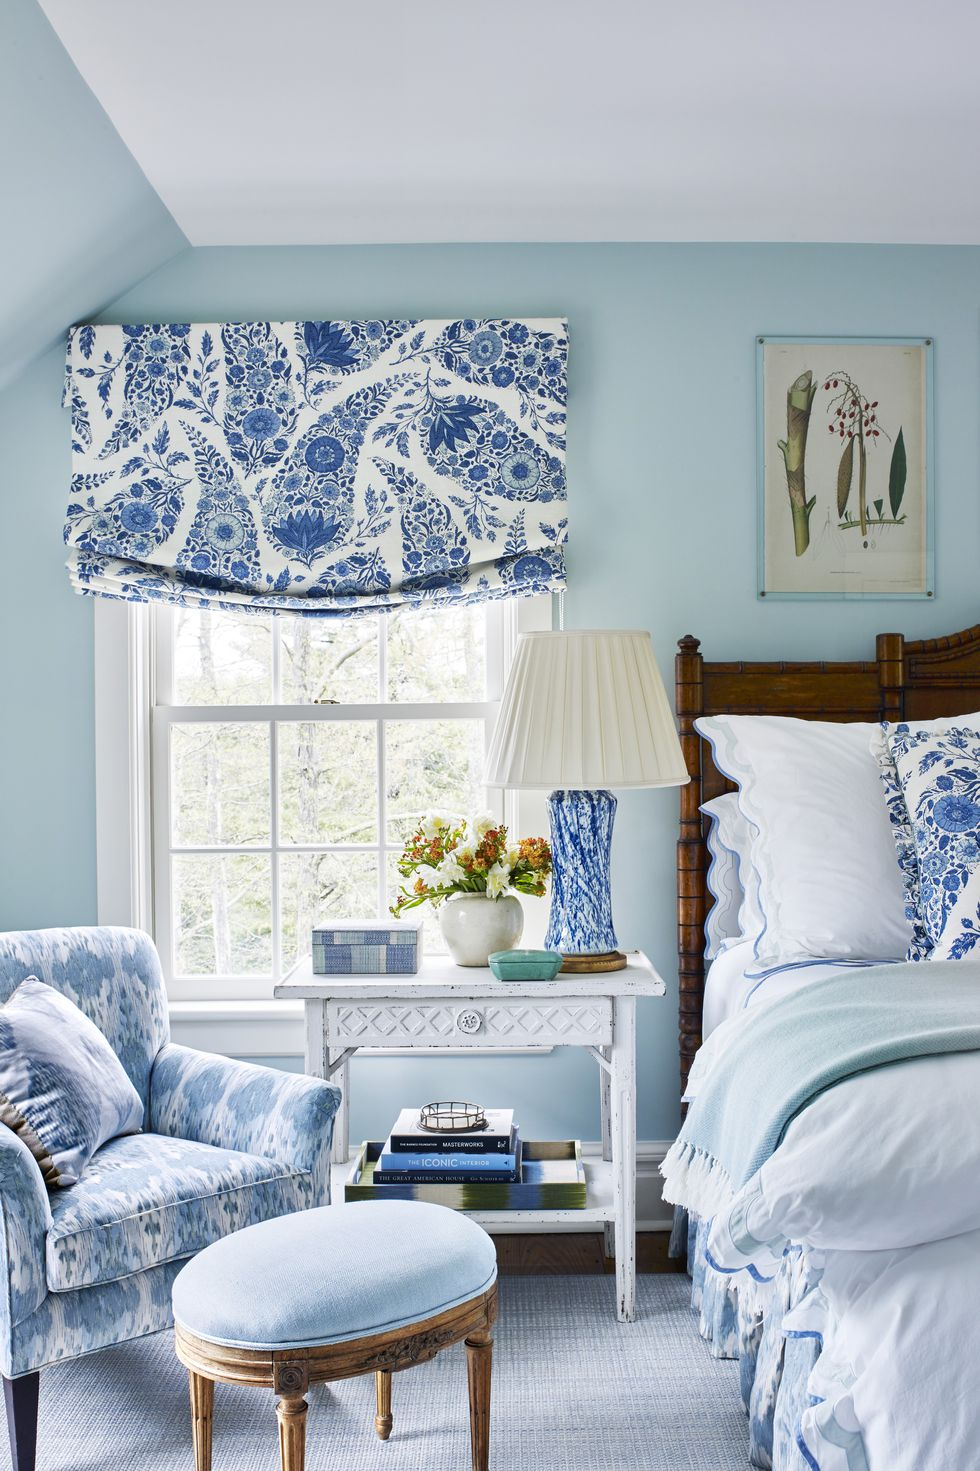 1572969148 926 20 beautiful blue rooms ideas to decorate with blue - 20 Beautiful Blue Rooms – Ideas To Decorate With Blue